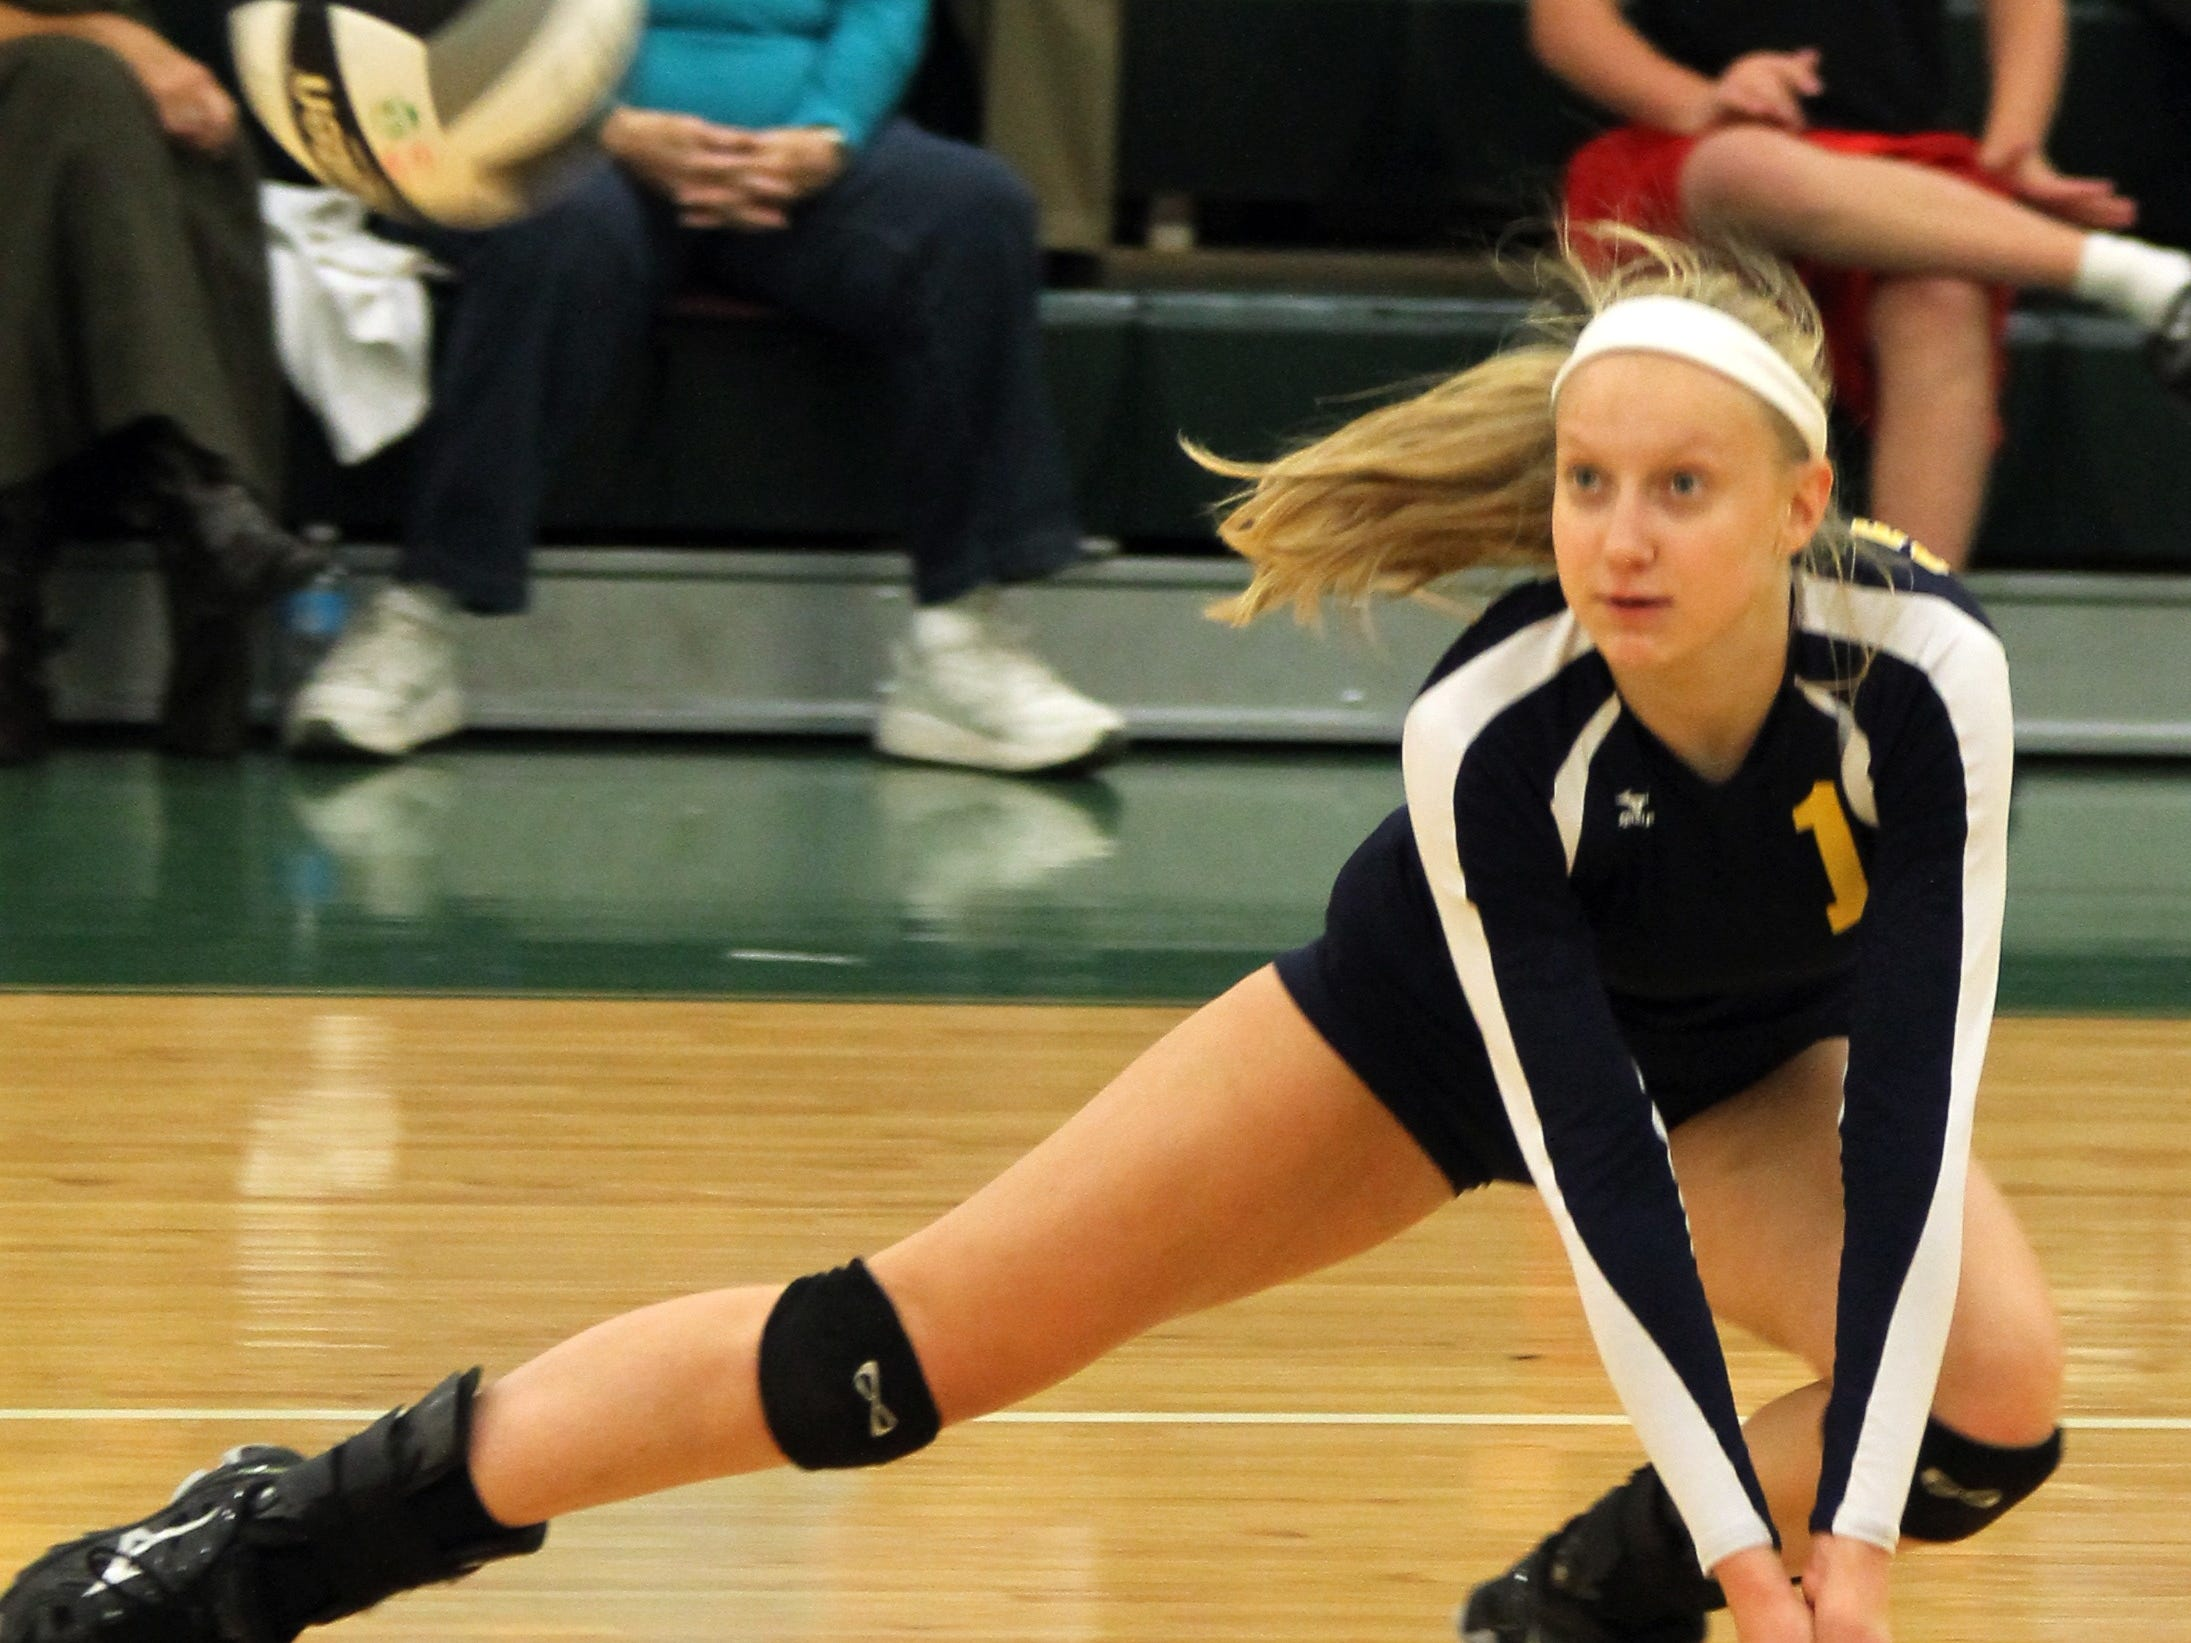 St. Ursula Academy's Anna Ficker (1) lunges to dig the ball against Ursuline Academy last season. She is one of three returning senior starters for the Bulldogs.